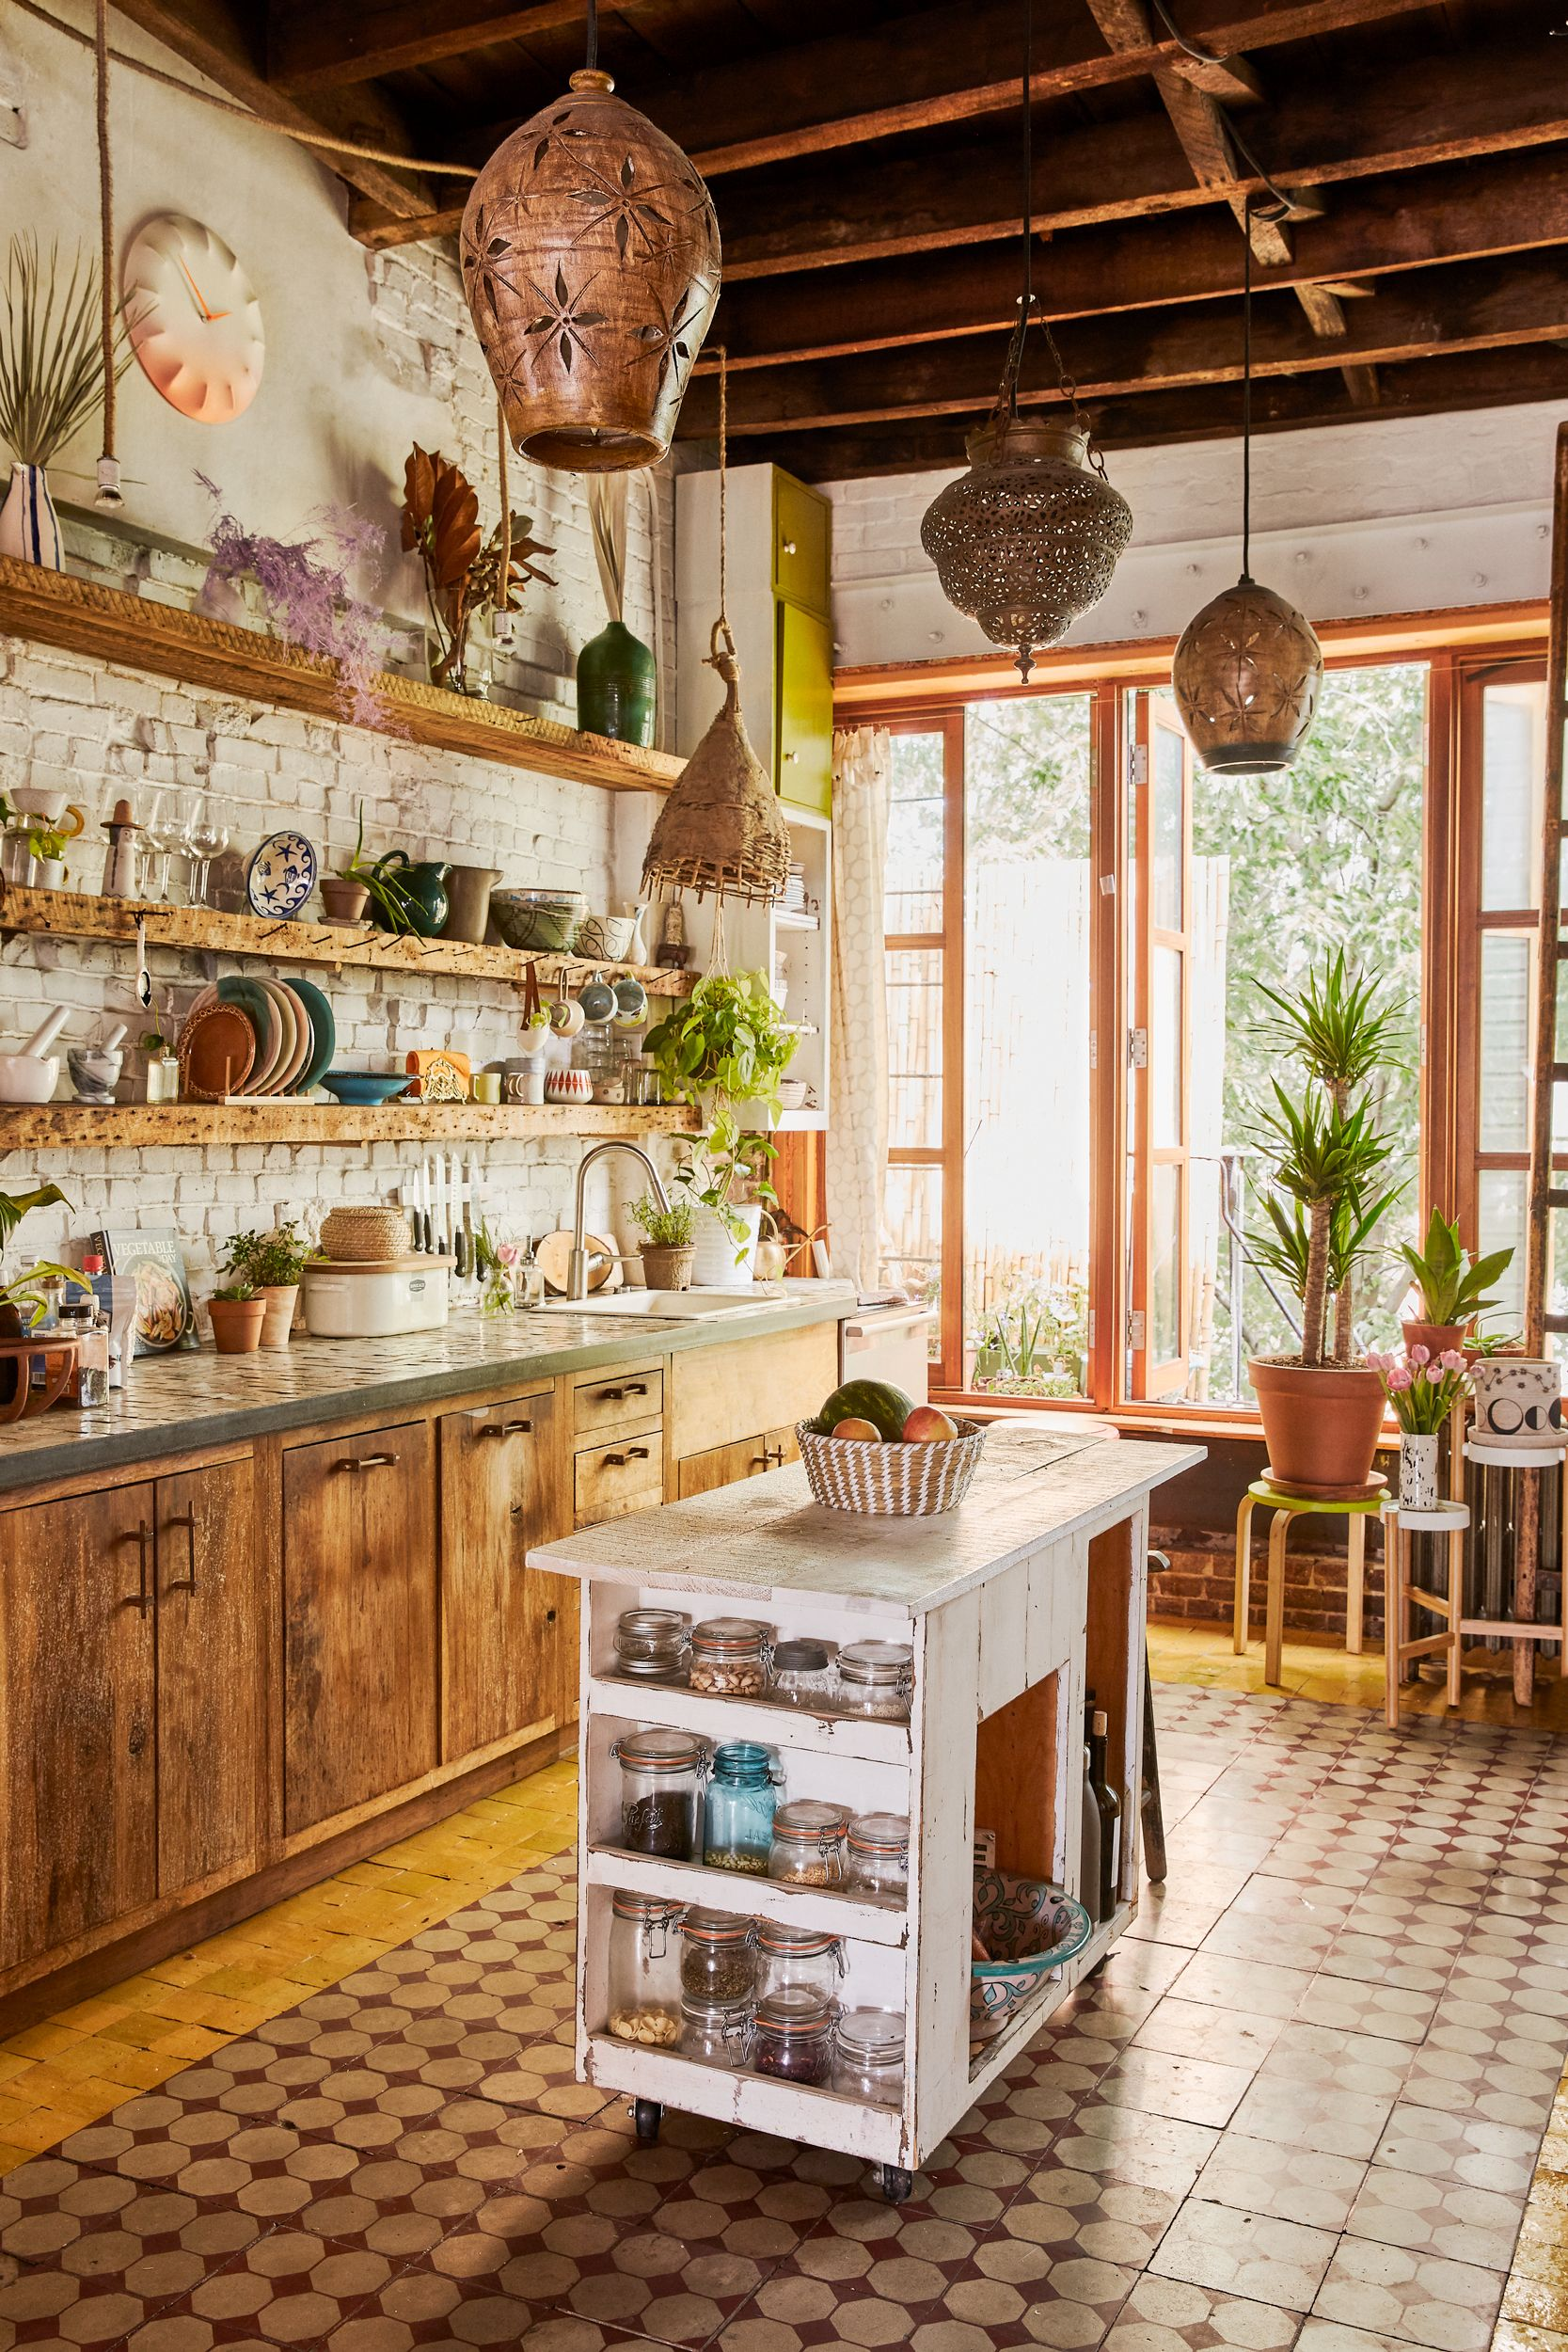 People Of 2morrow Founders Brooklyn Home Tour